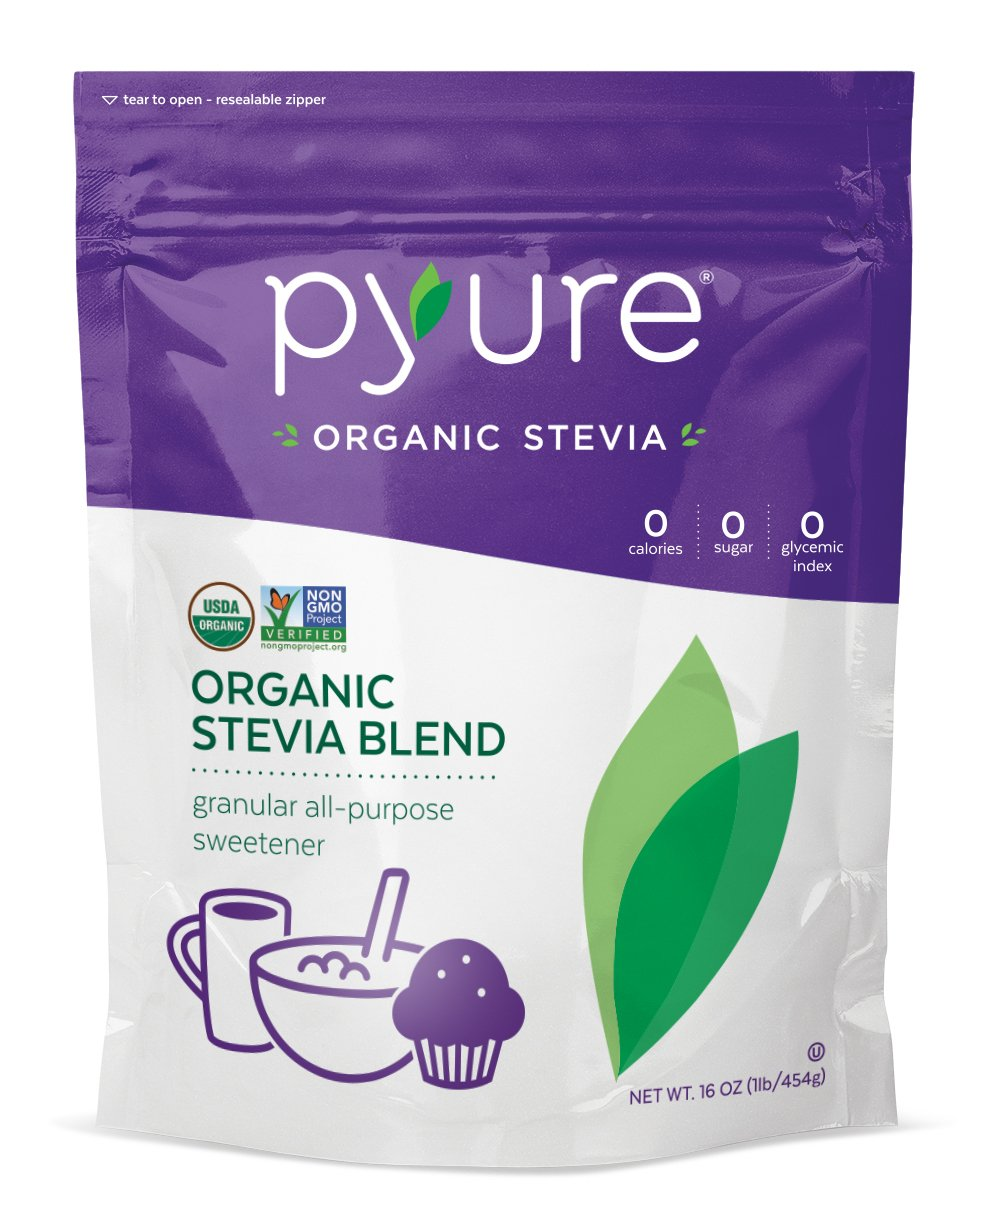 Pyure Organic Stevia All-Purpose Blend Sweetener, 16 Ounce (Pack of 6)